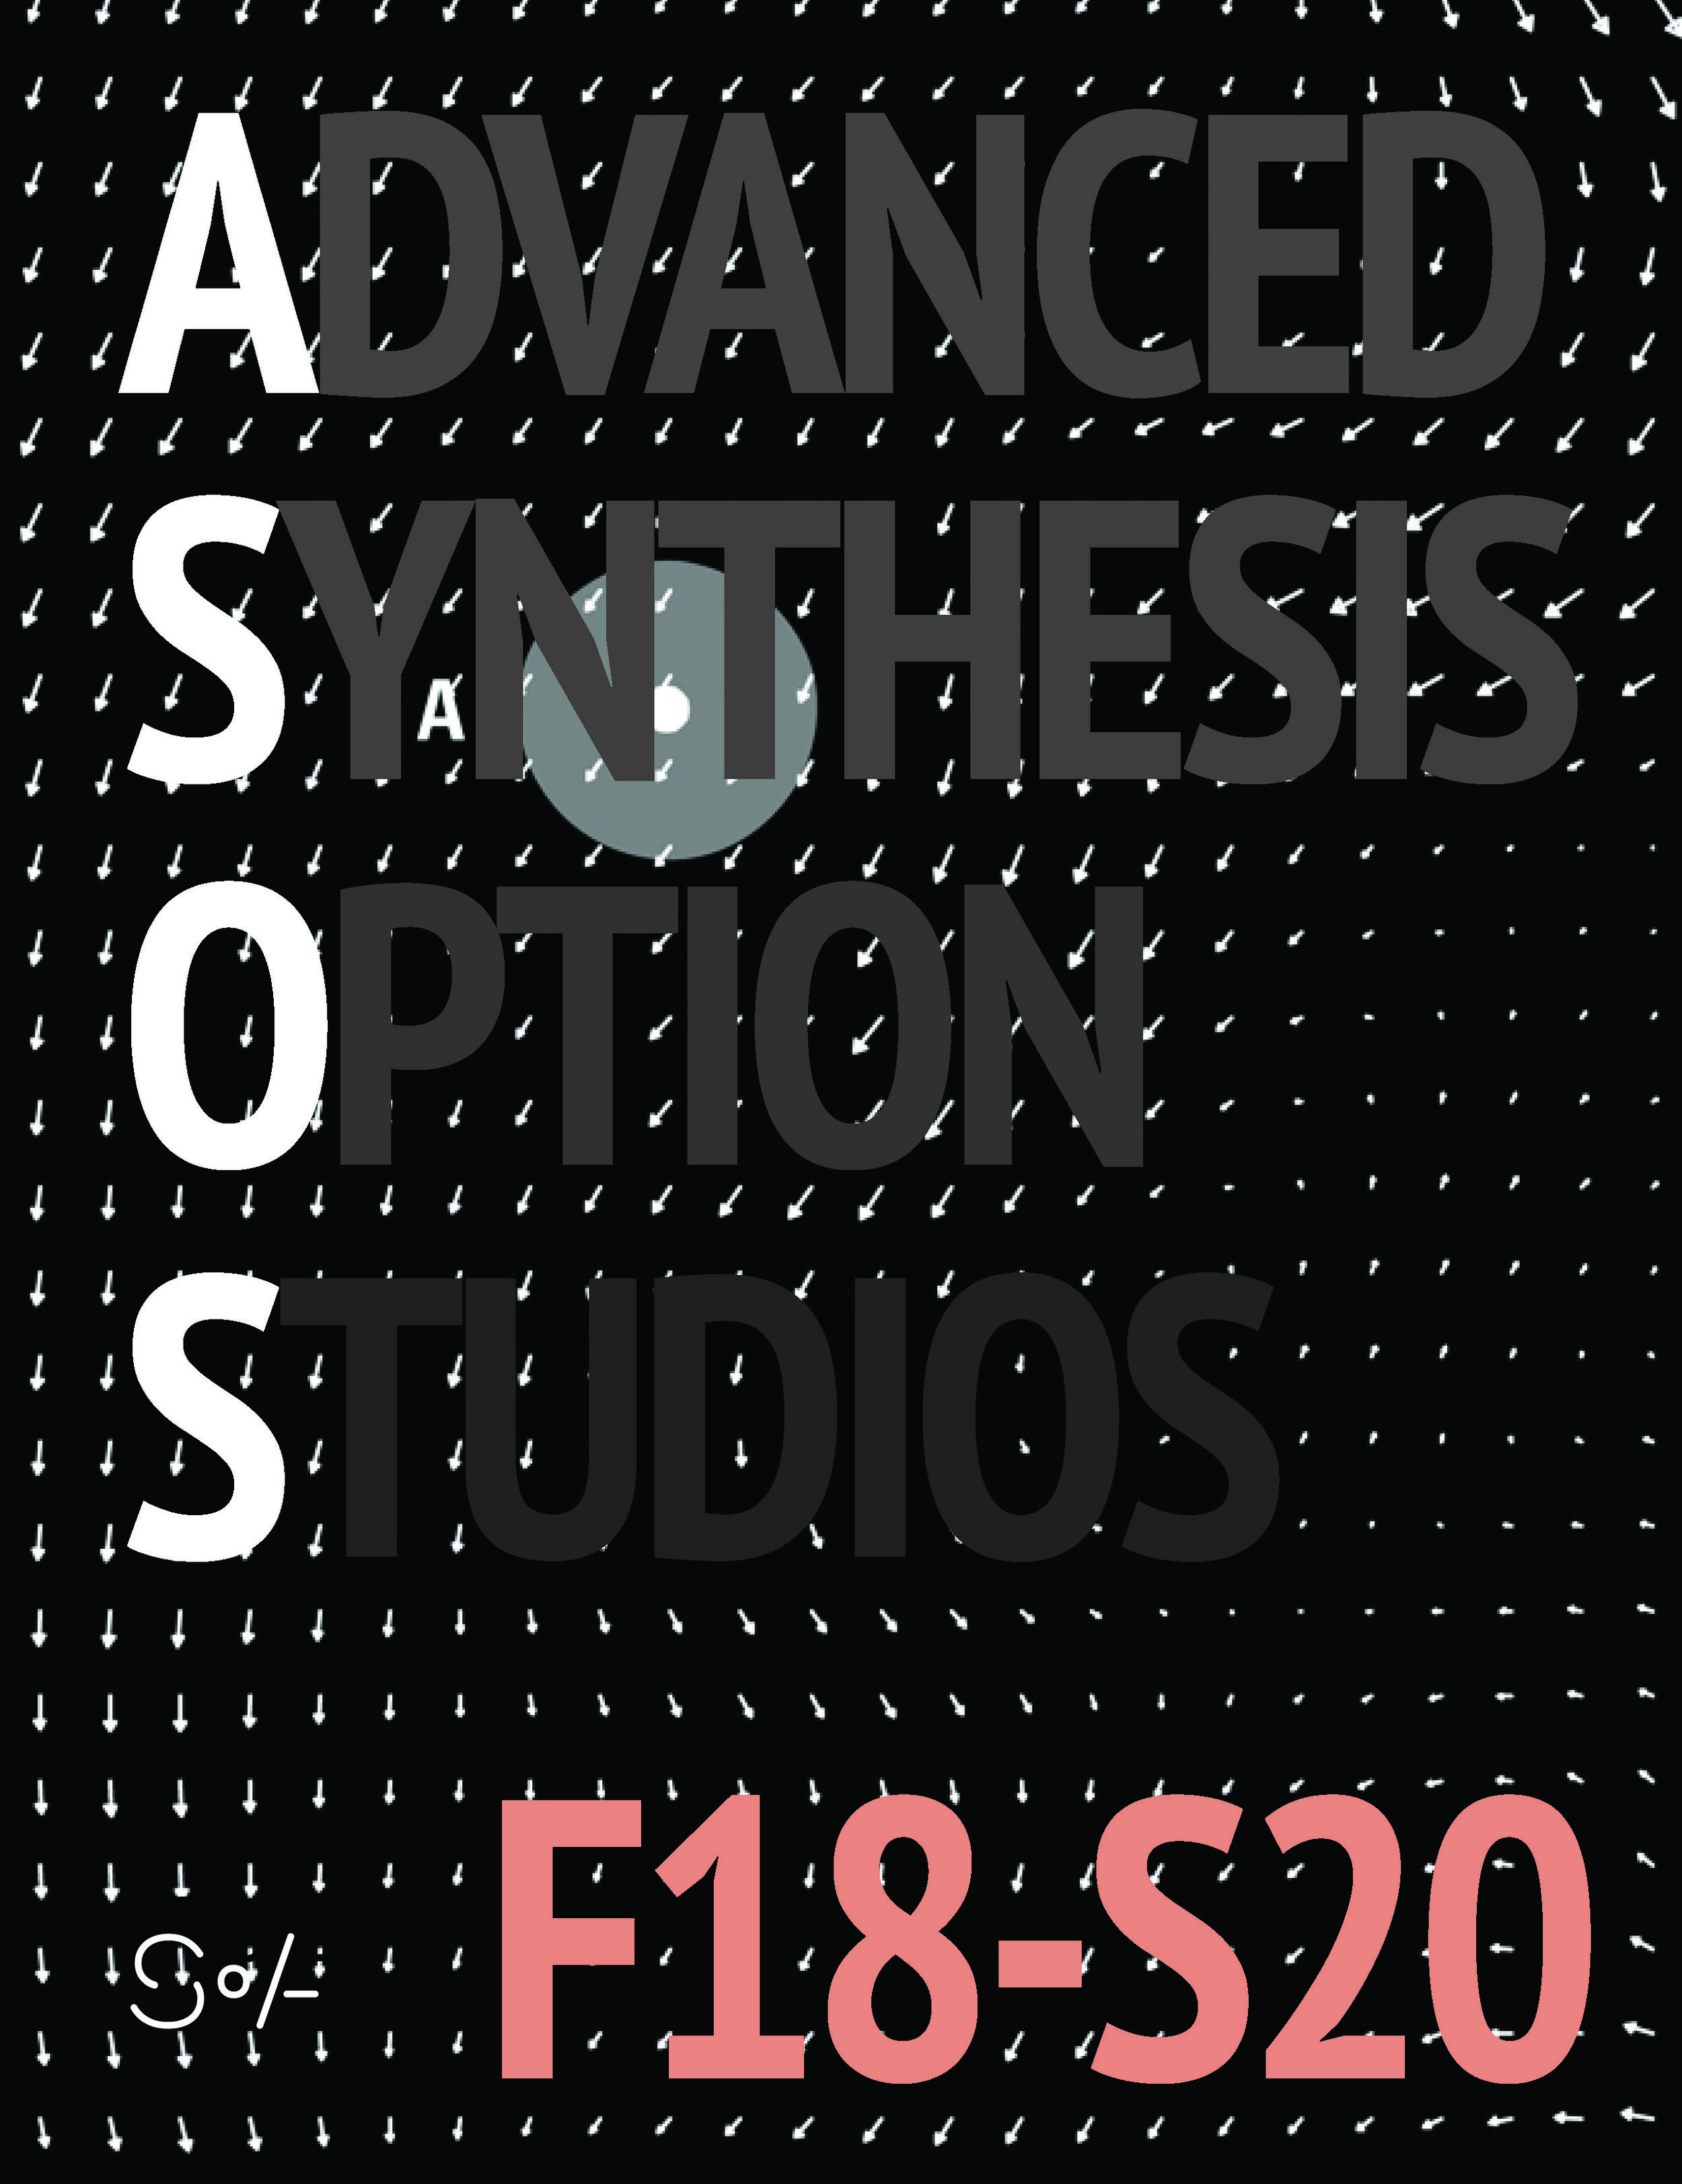 ASOS-Catalog_F18-S20_20180621_Cover_01.jpg